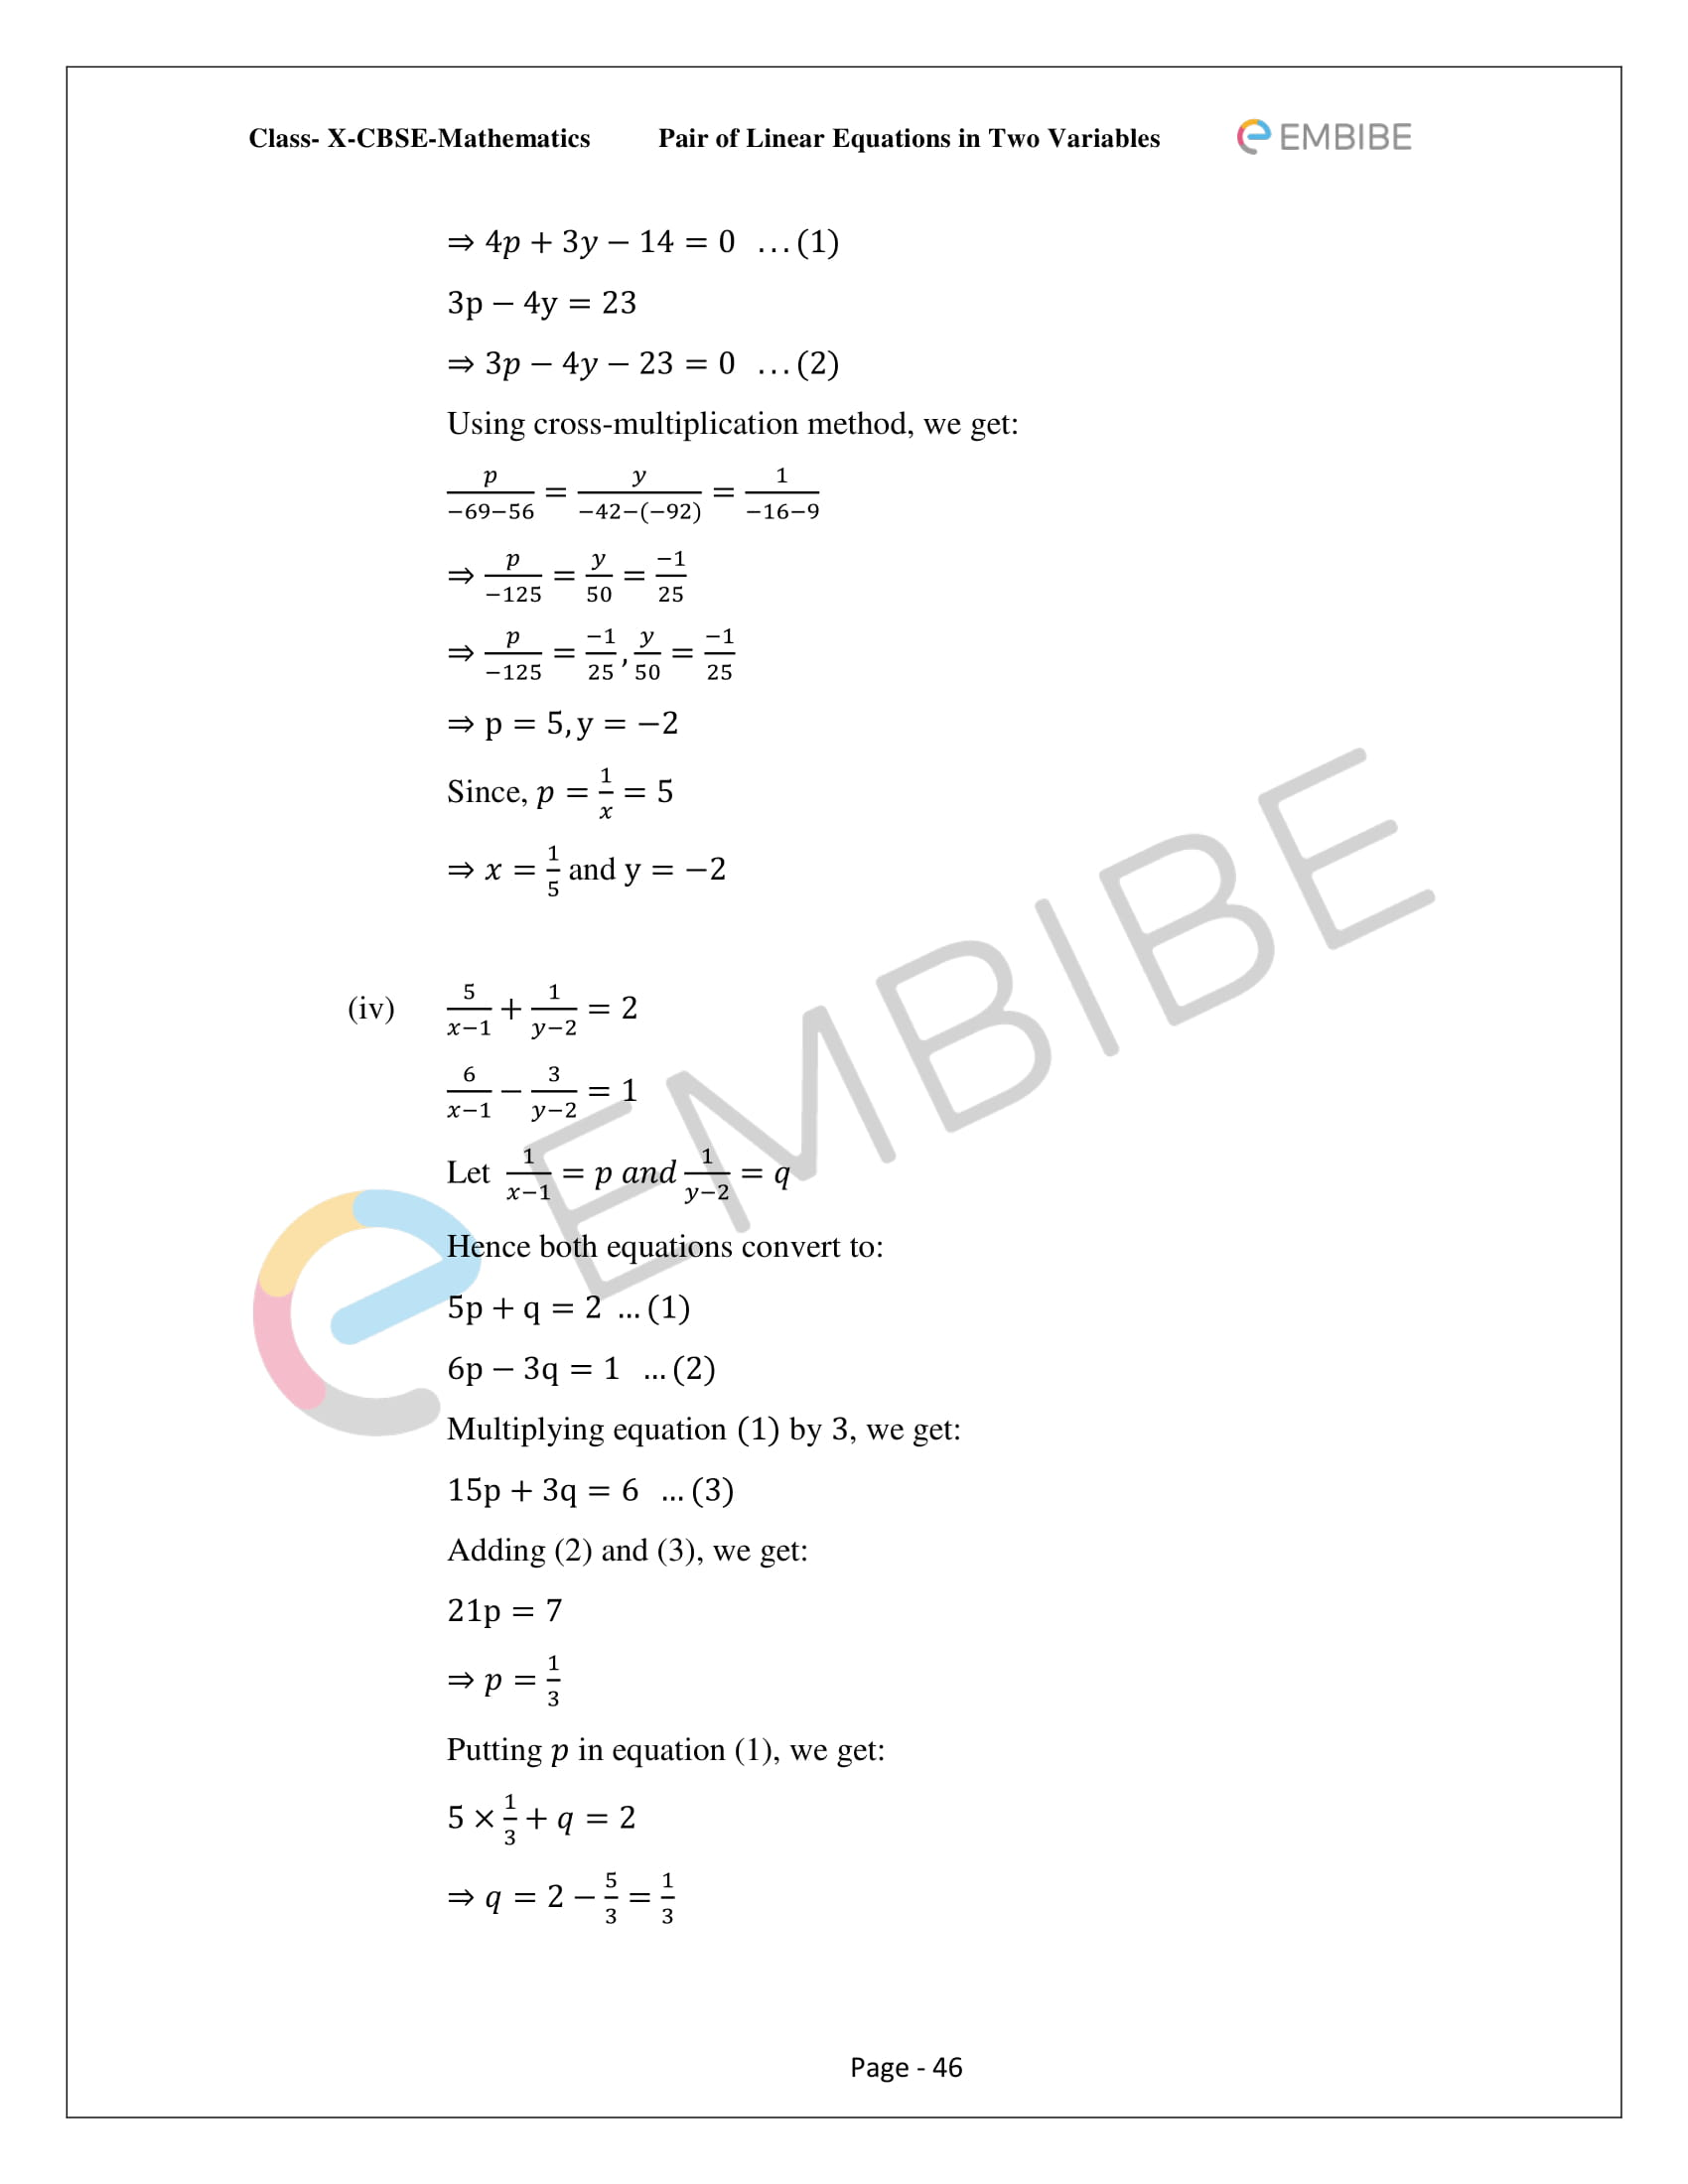 Cross Multiplication Method To Solve Linear Equation In